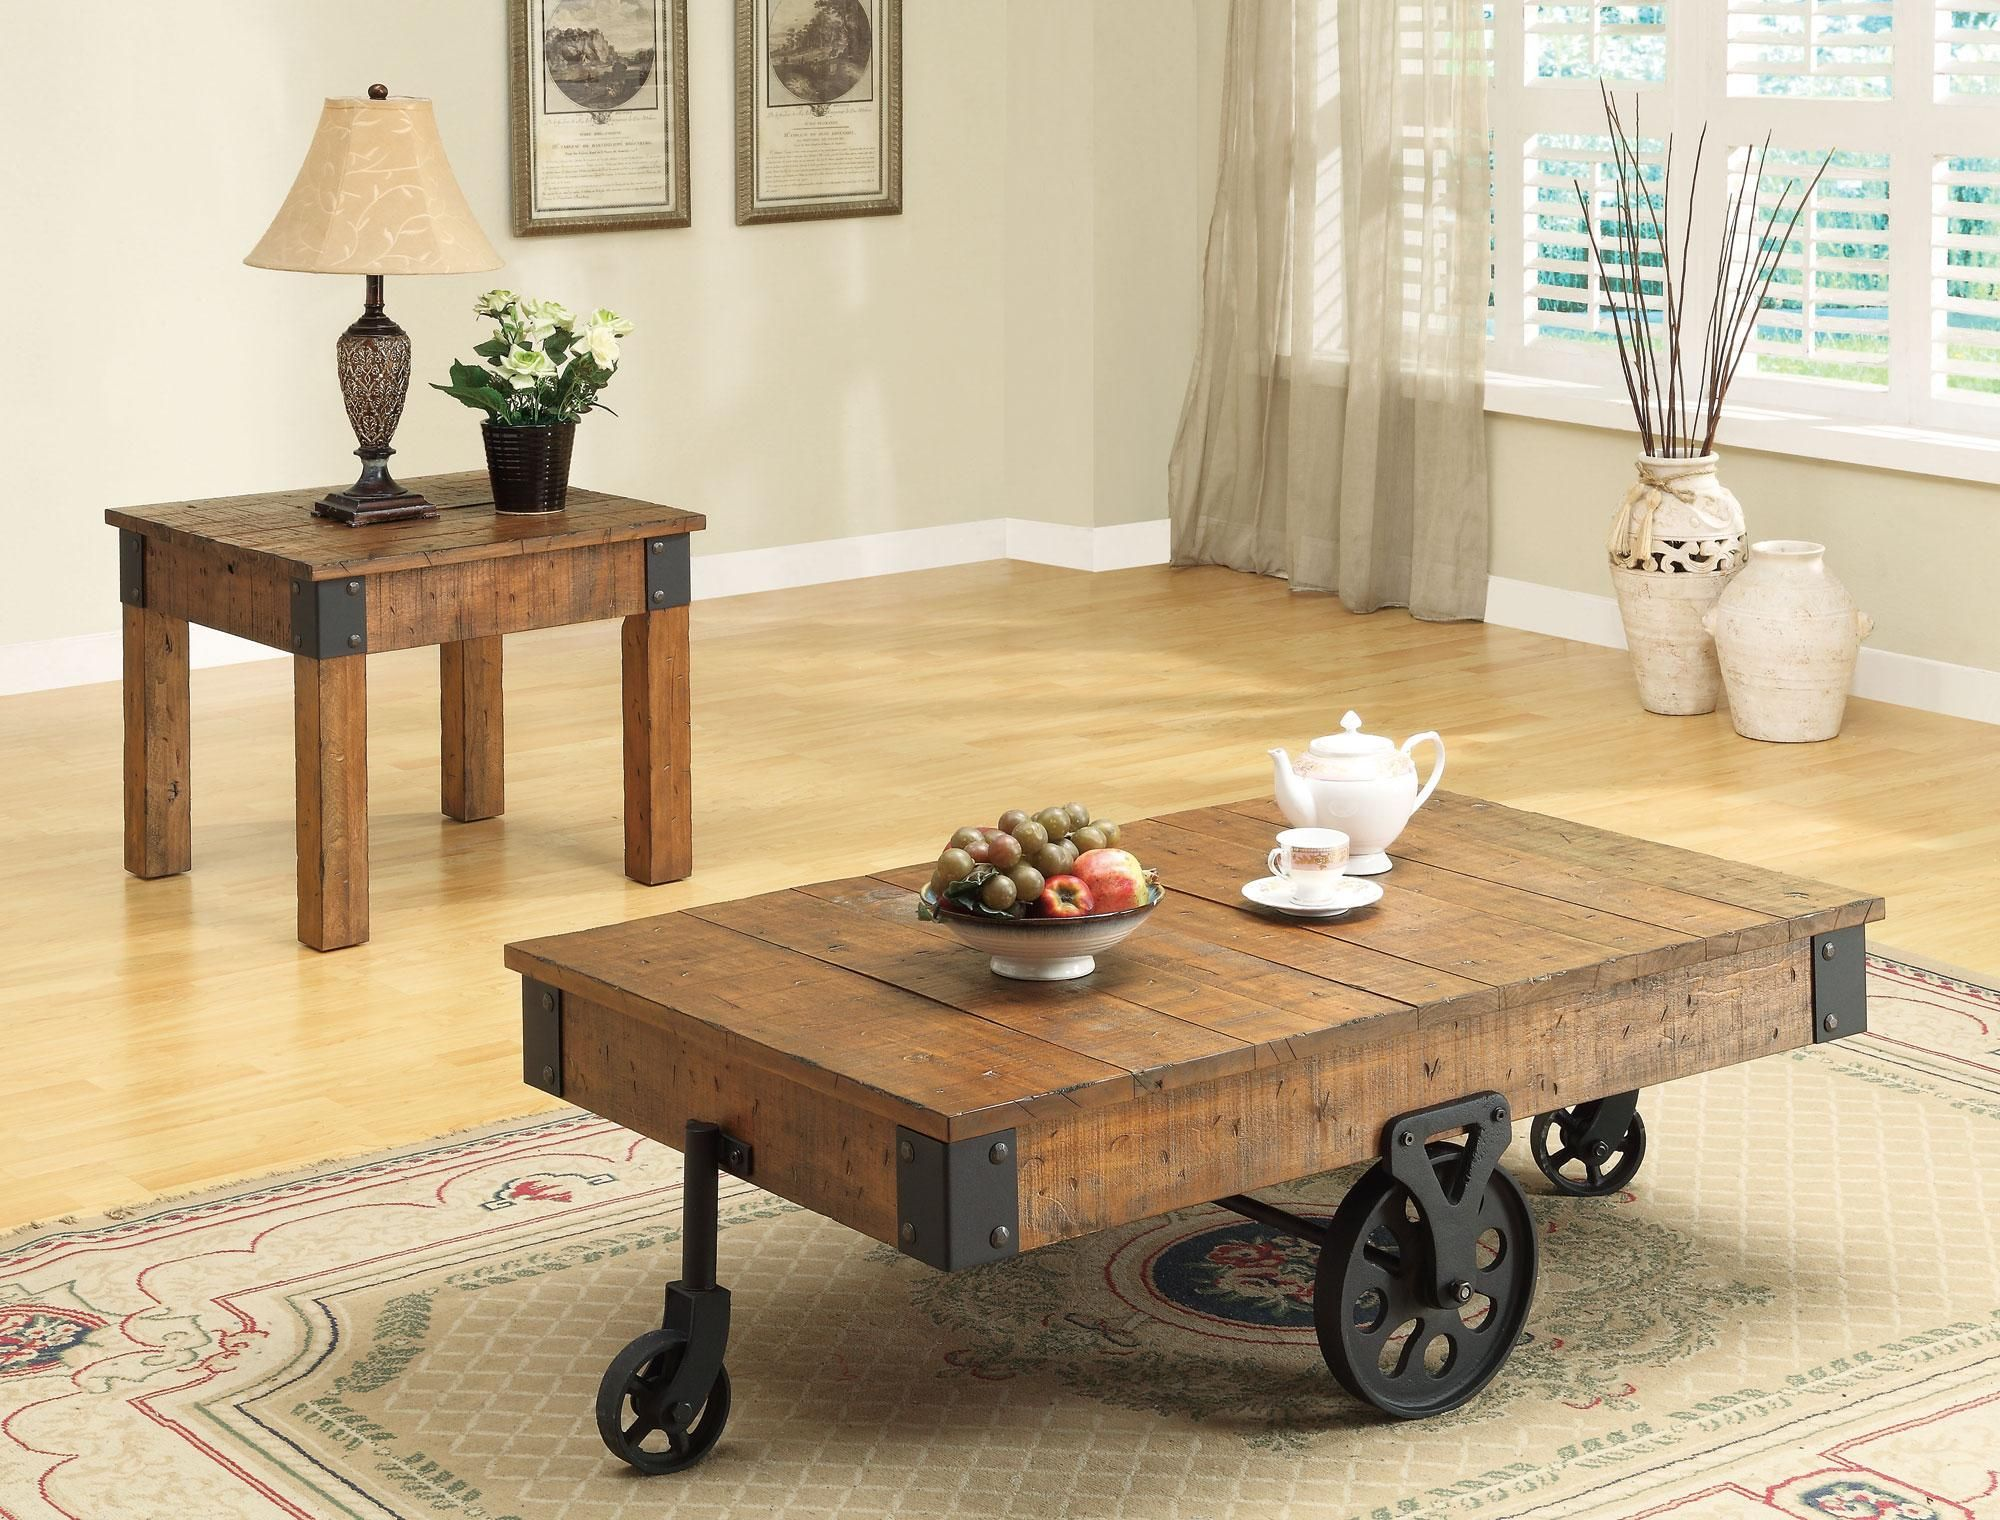 Coaster Accent Tables Distressed Country Wagon Coffee Table Coaster Fine Furniture Coffee Table Wood Rustic Coffee Tables Coffee Table With Wheels